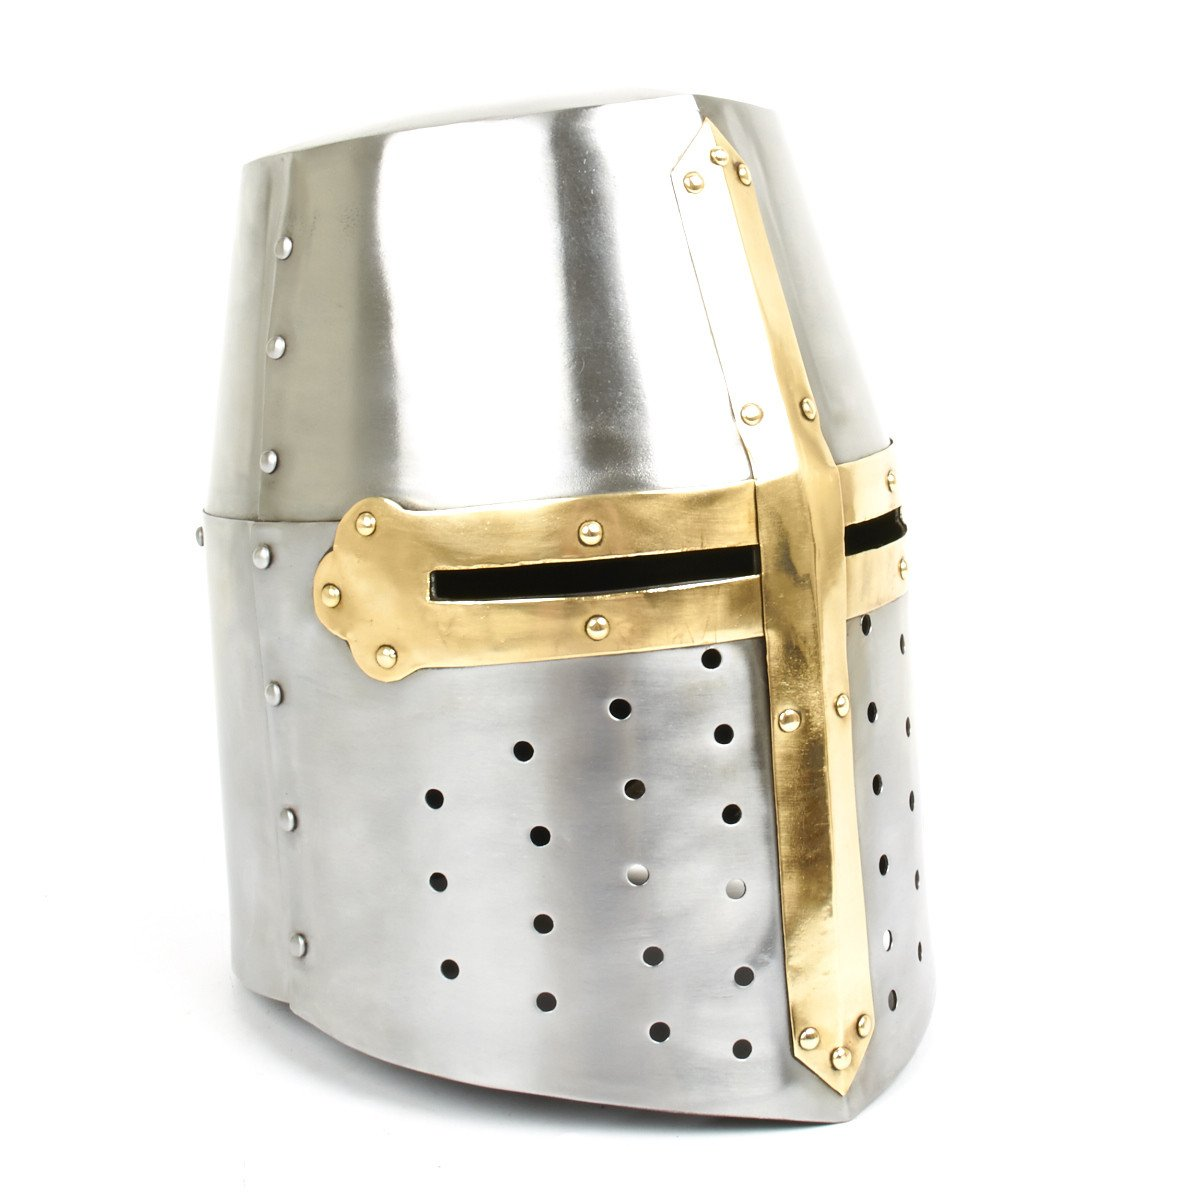 Medieval Crusader Knight's Great Helmet - 18G Steel and Brass with Leather  Liner